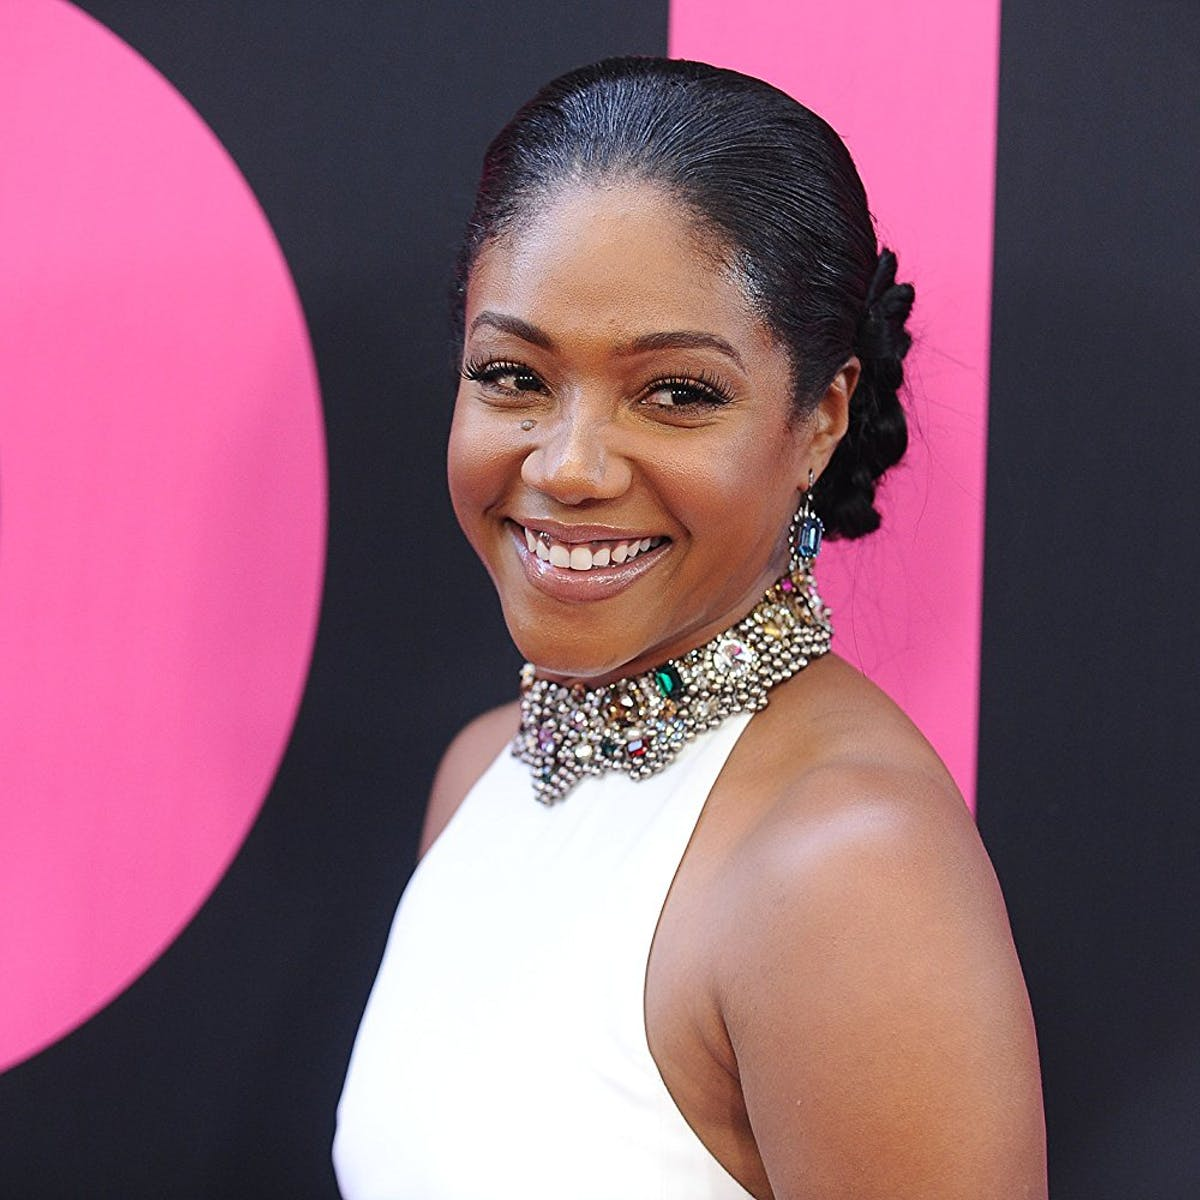 Tiffany Haddish's Turpentine Drinking Points to an American Medical